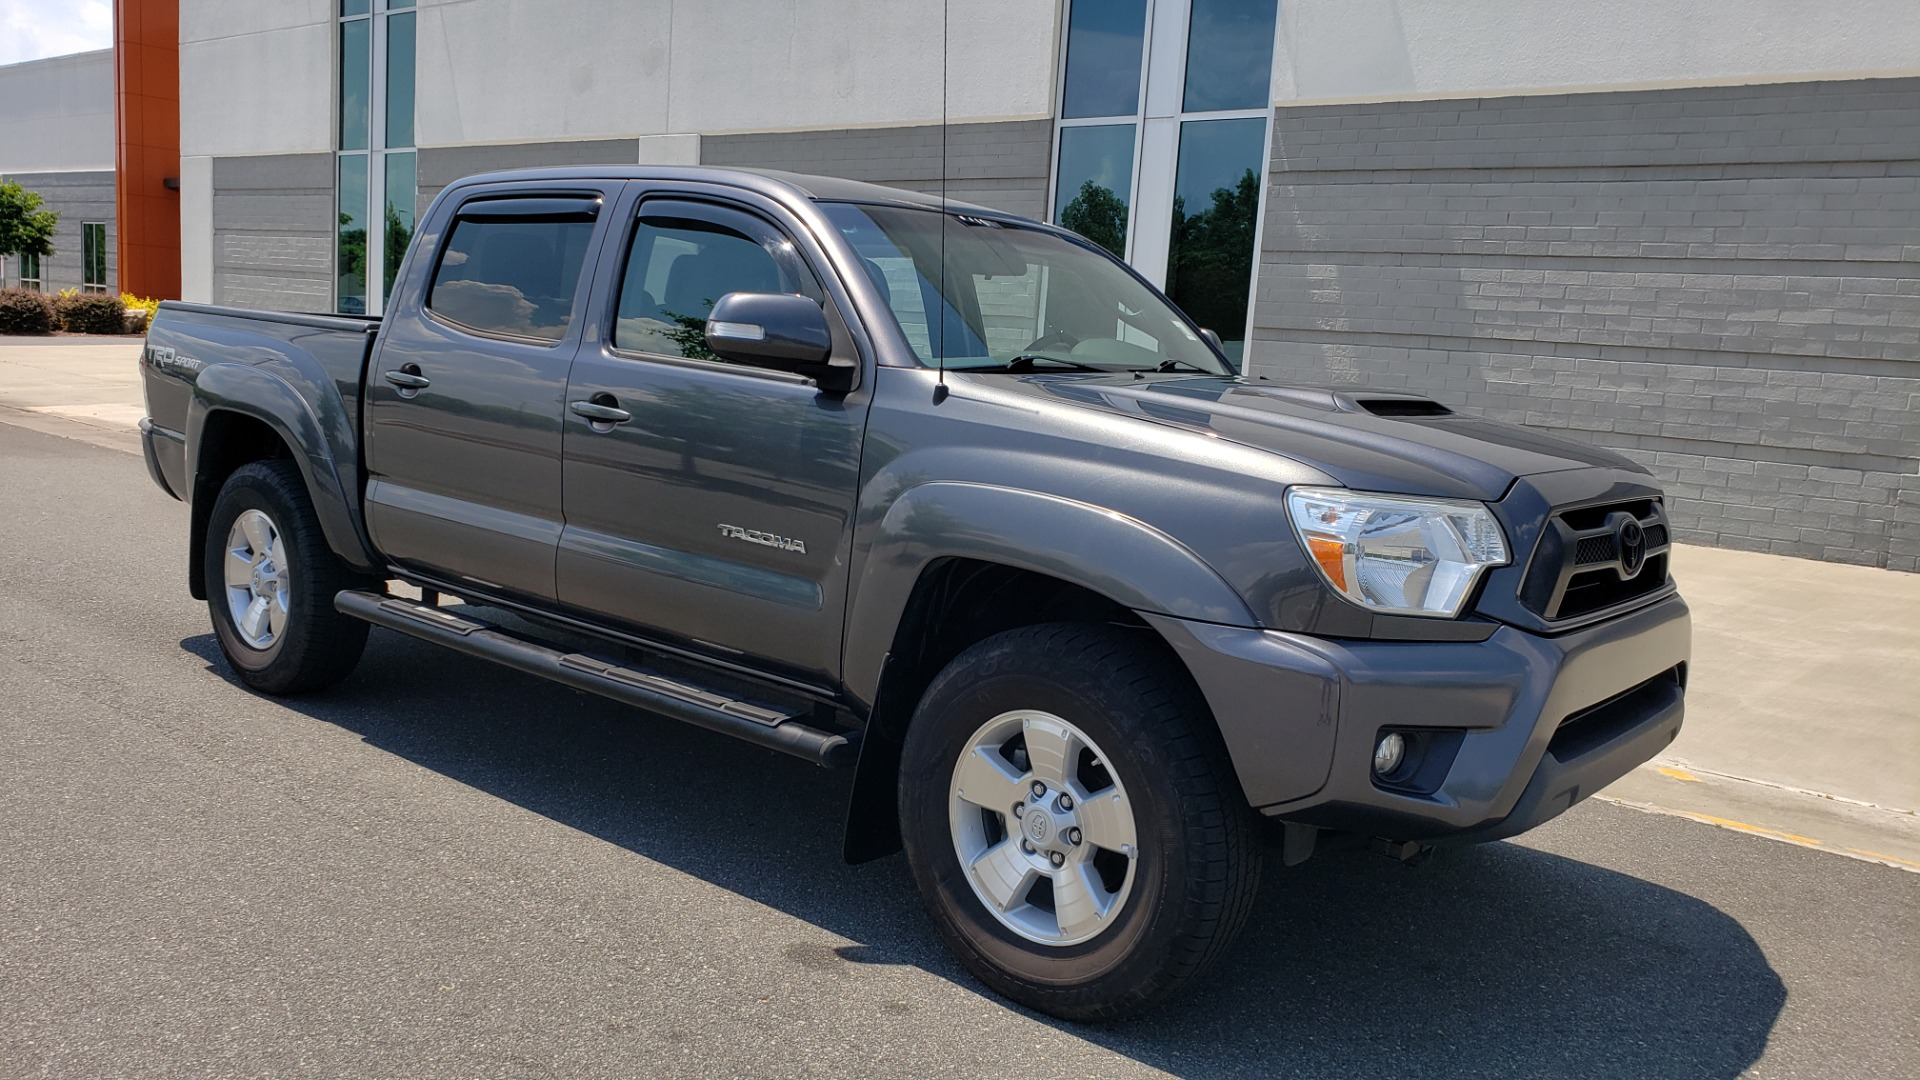 Used 2014 Toyota TACOMA PRERUNNER DOUBLECAB / TRD SPORT / V6 / 5-SPD AUTO / TOW PKG for sale $21,595 at Formula Imports in Charlotte NC 28227 4